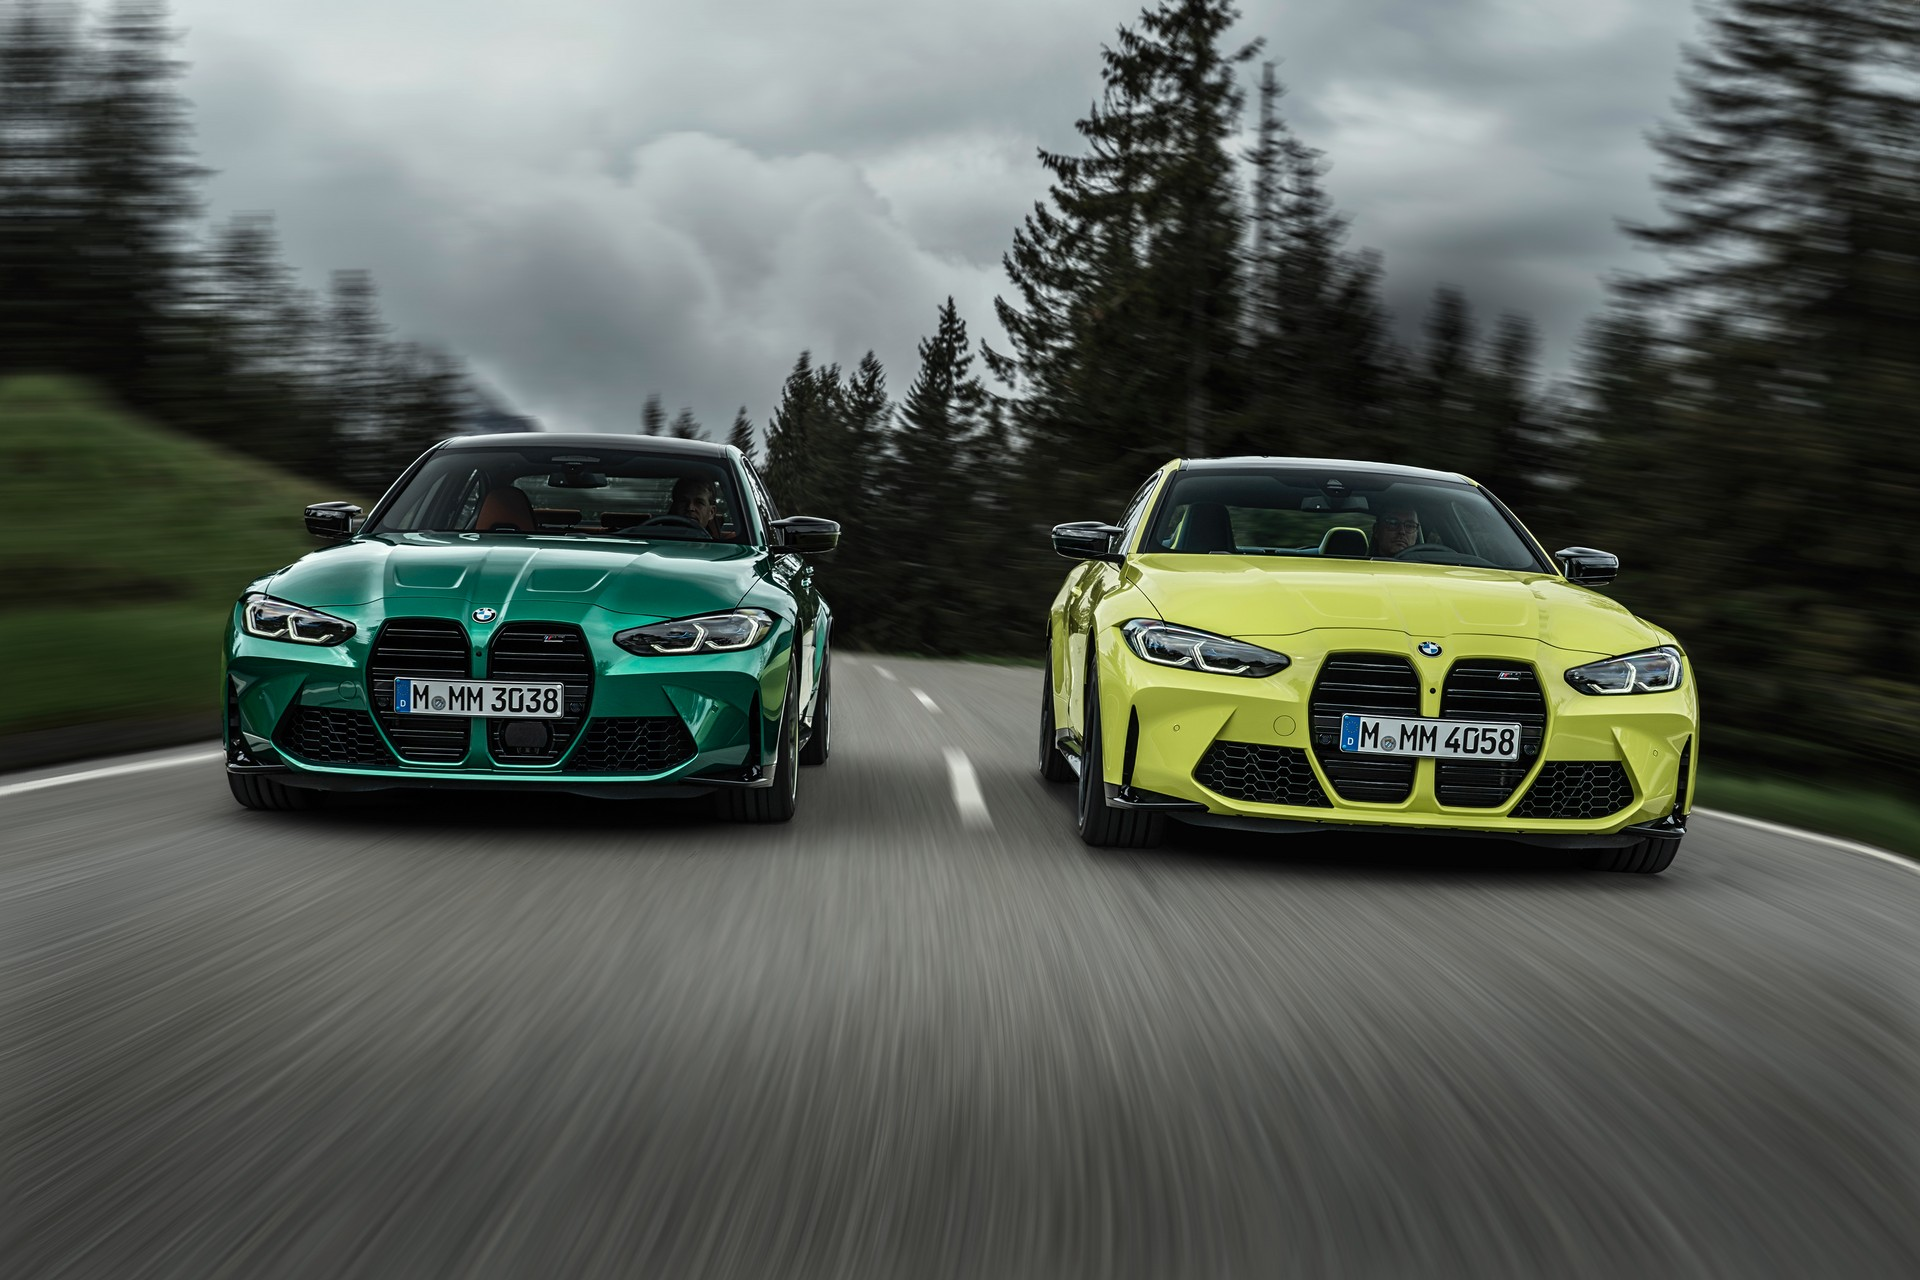 2021-bmw-m3-and-m4-1.jpg